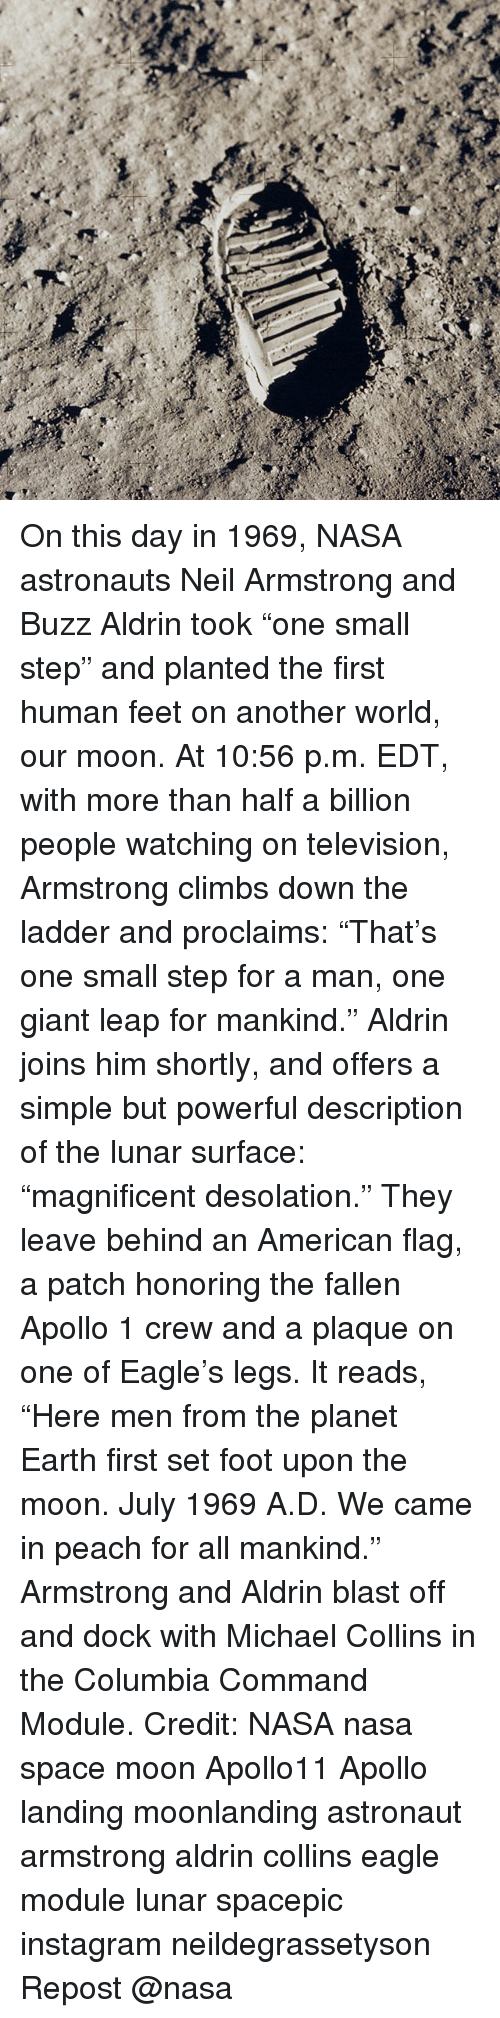 """ladders: On this day in 1969, NASA astronauts Neil Armstrong and Buzz Aldrin took """"one small step"""" and planted the first human feet on another world, our moon. At 10:56 p.m. EDT, with more than half a billion people watching on television, Armstrong climbs down the ladder and proclaims: """"That's one small step for a man, one giant leap for mankind."""" Aldrin joins him shortly, and offers a simple but powerful description of the lunar surface: """"magnificent desolation."""" They leave behind an American flag, a patch honoring the fallen Apollo 1 crew and a plaque on one of Eagle's legs. It reads, """"Here men from the planet Earth first set foot upon the moon. July 1969 A.D. We came in peach for all mankind."""" Armstrong and Aldrin blast off and dock with Michael Collins in the Columbia Command Module. Credit: NASA nasa space moon Apollo11 Apollo landing moonlanding astronaut armstrong aldrin collins eagle module lunar spacepic instagram neildegrassetyson Repost @nasa"""